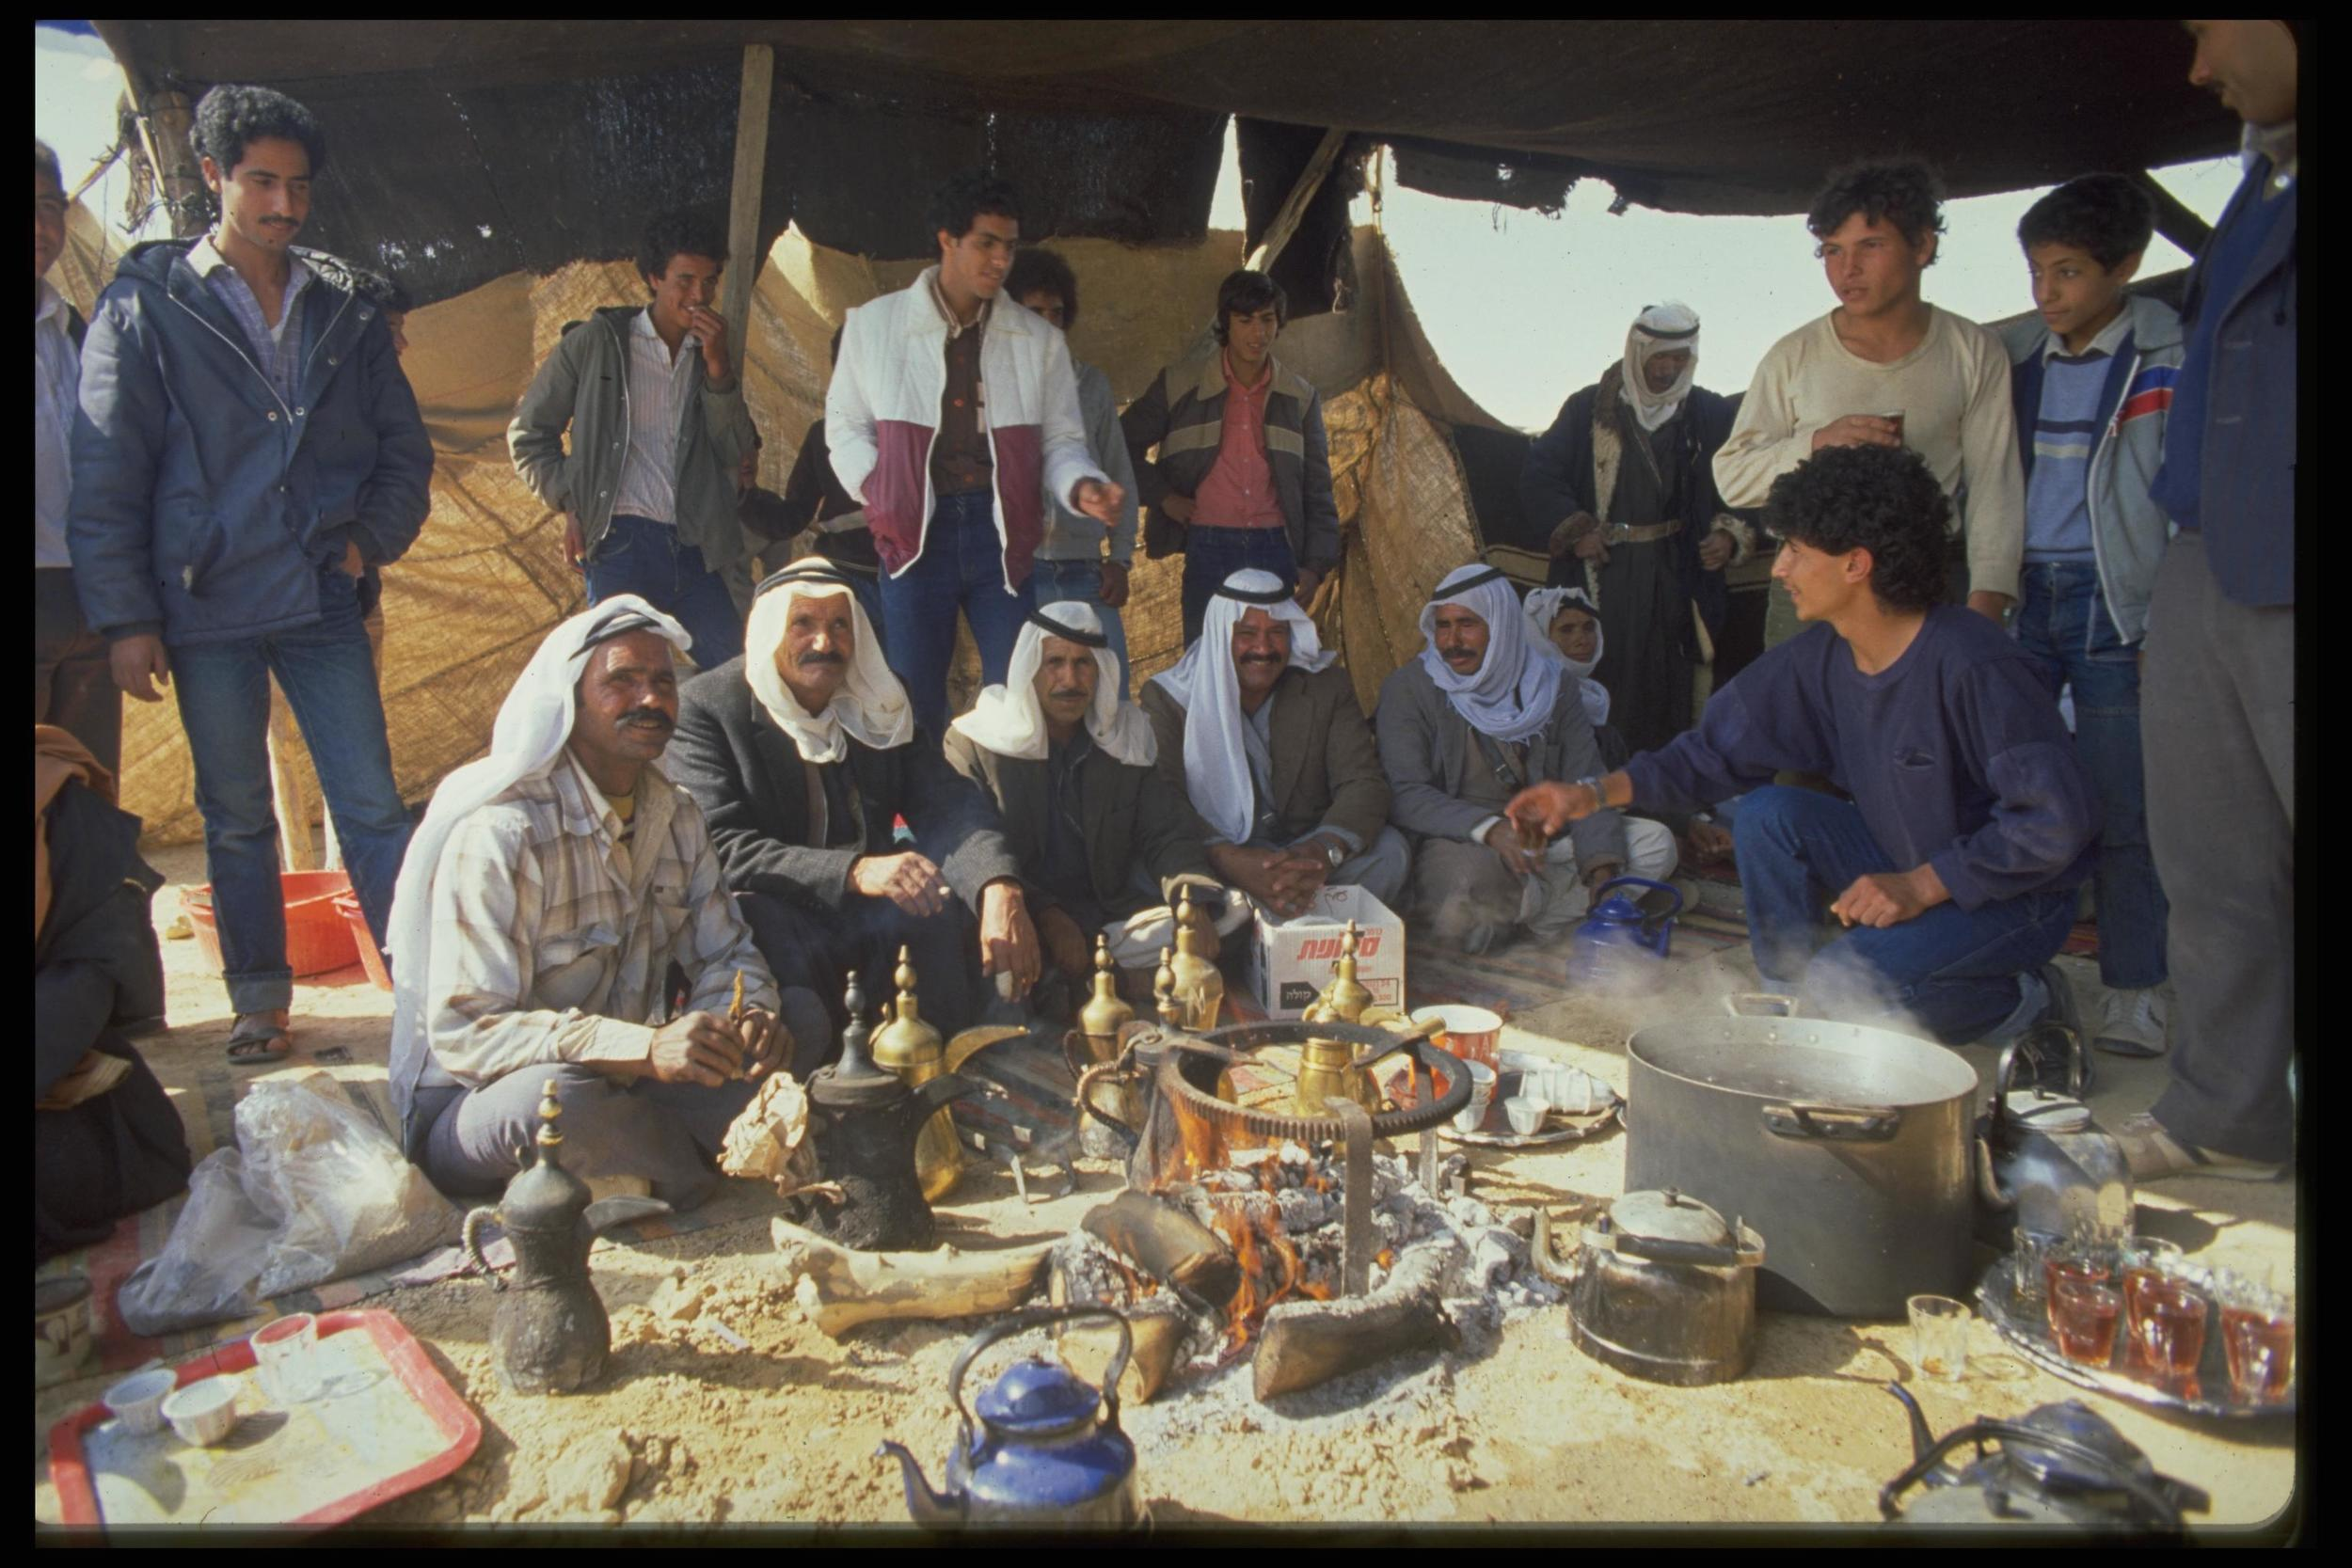 Flickr_-_Government_Press_Office_(GPO)_-_A_Bedouin_Celebration.jpg